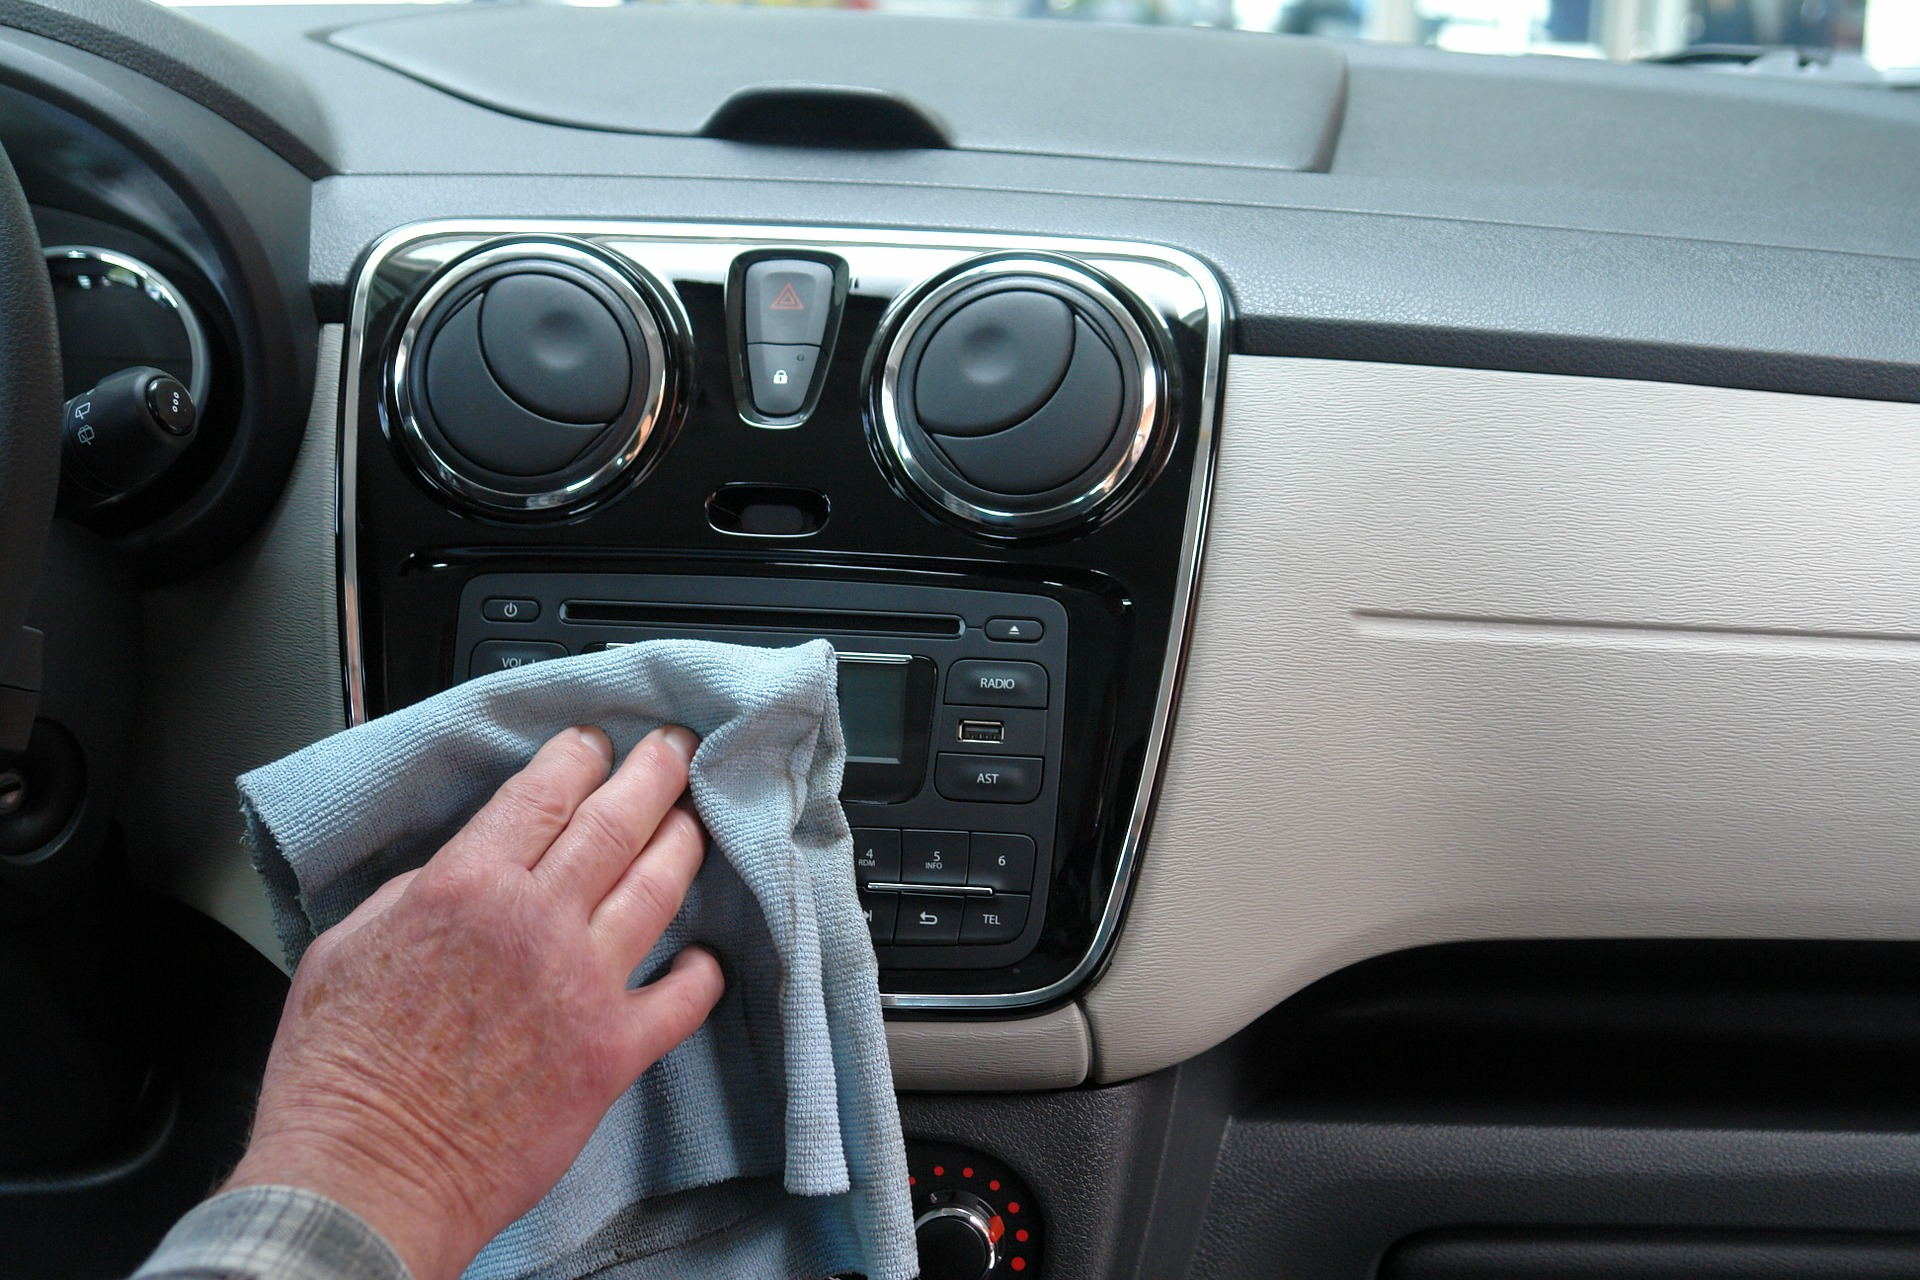 car cleaning tips to reduce the risk of covid-19